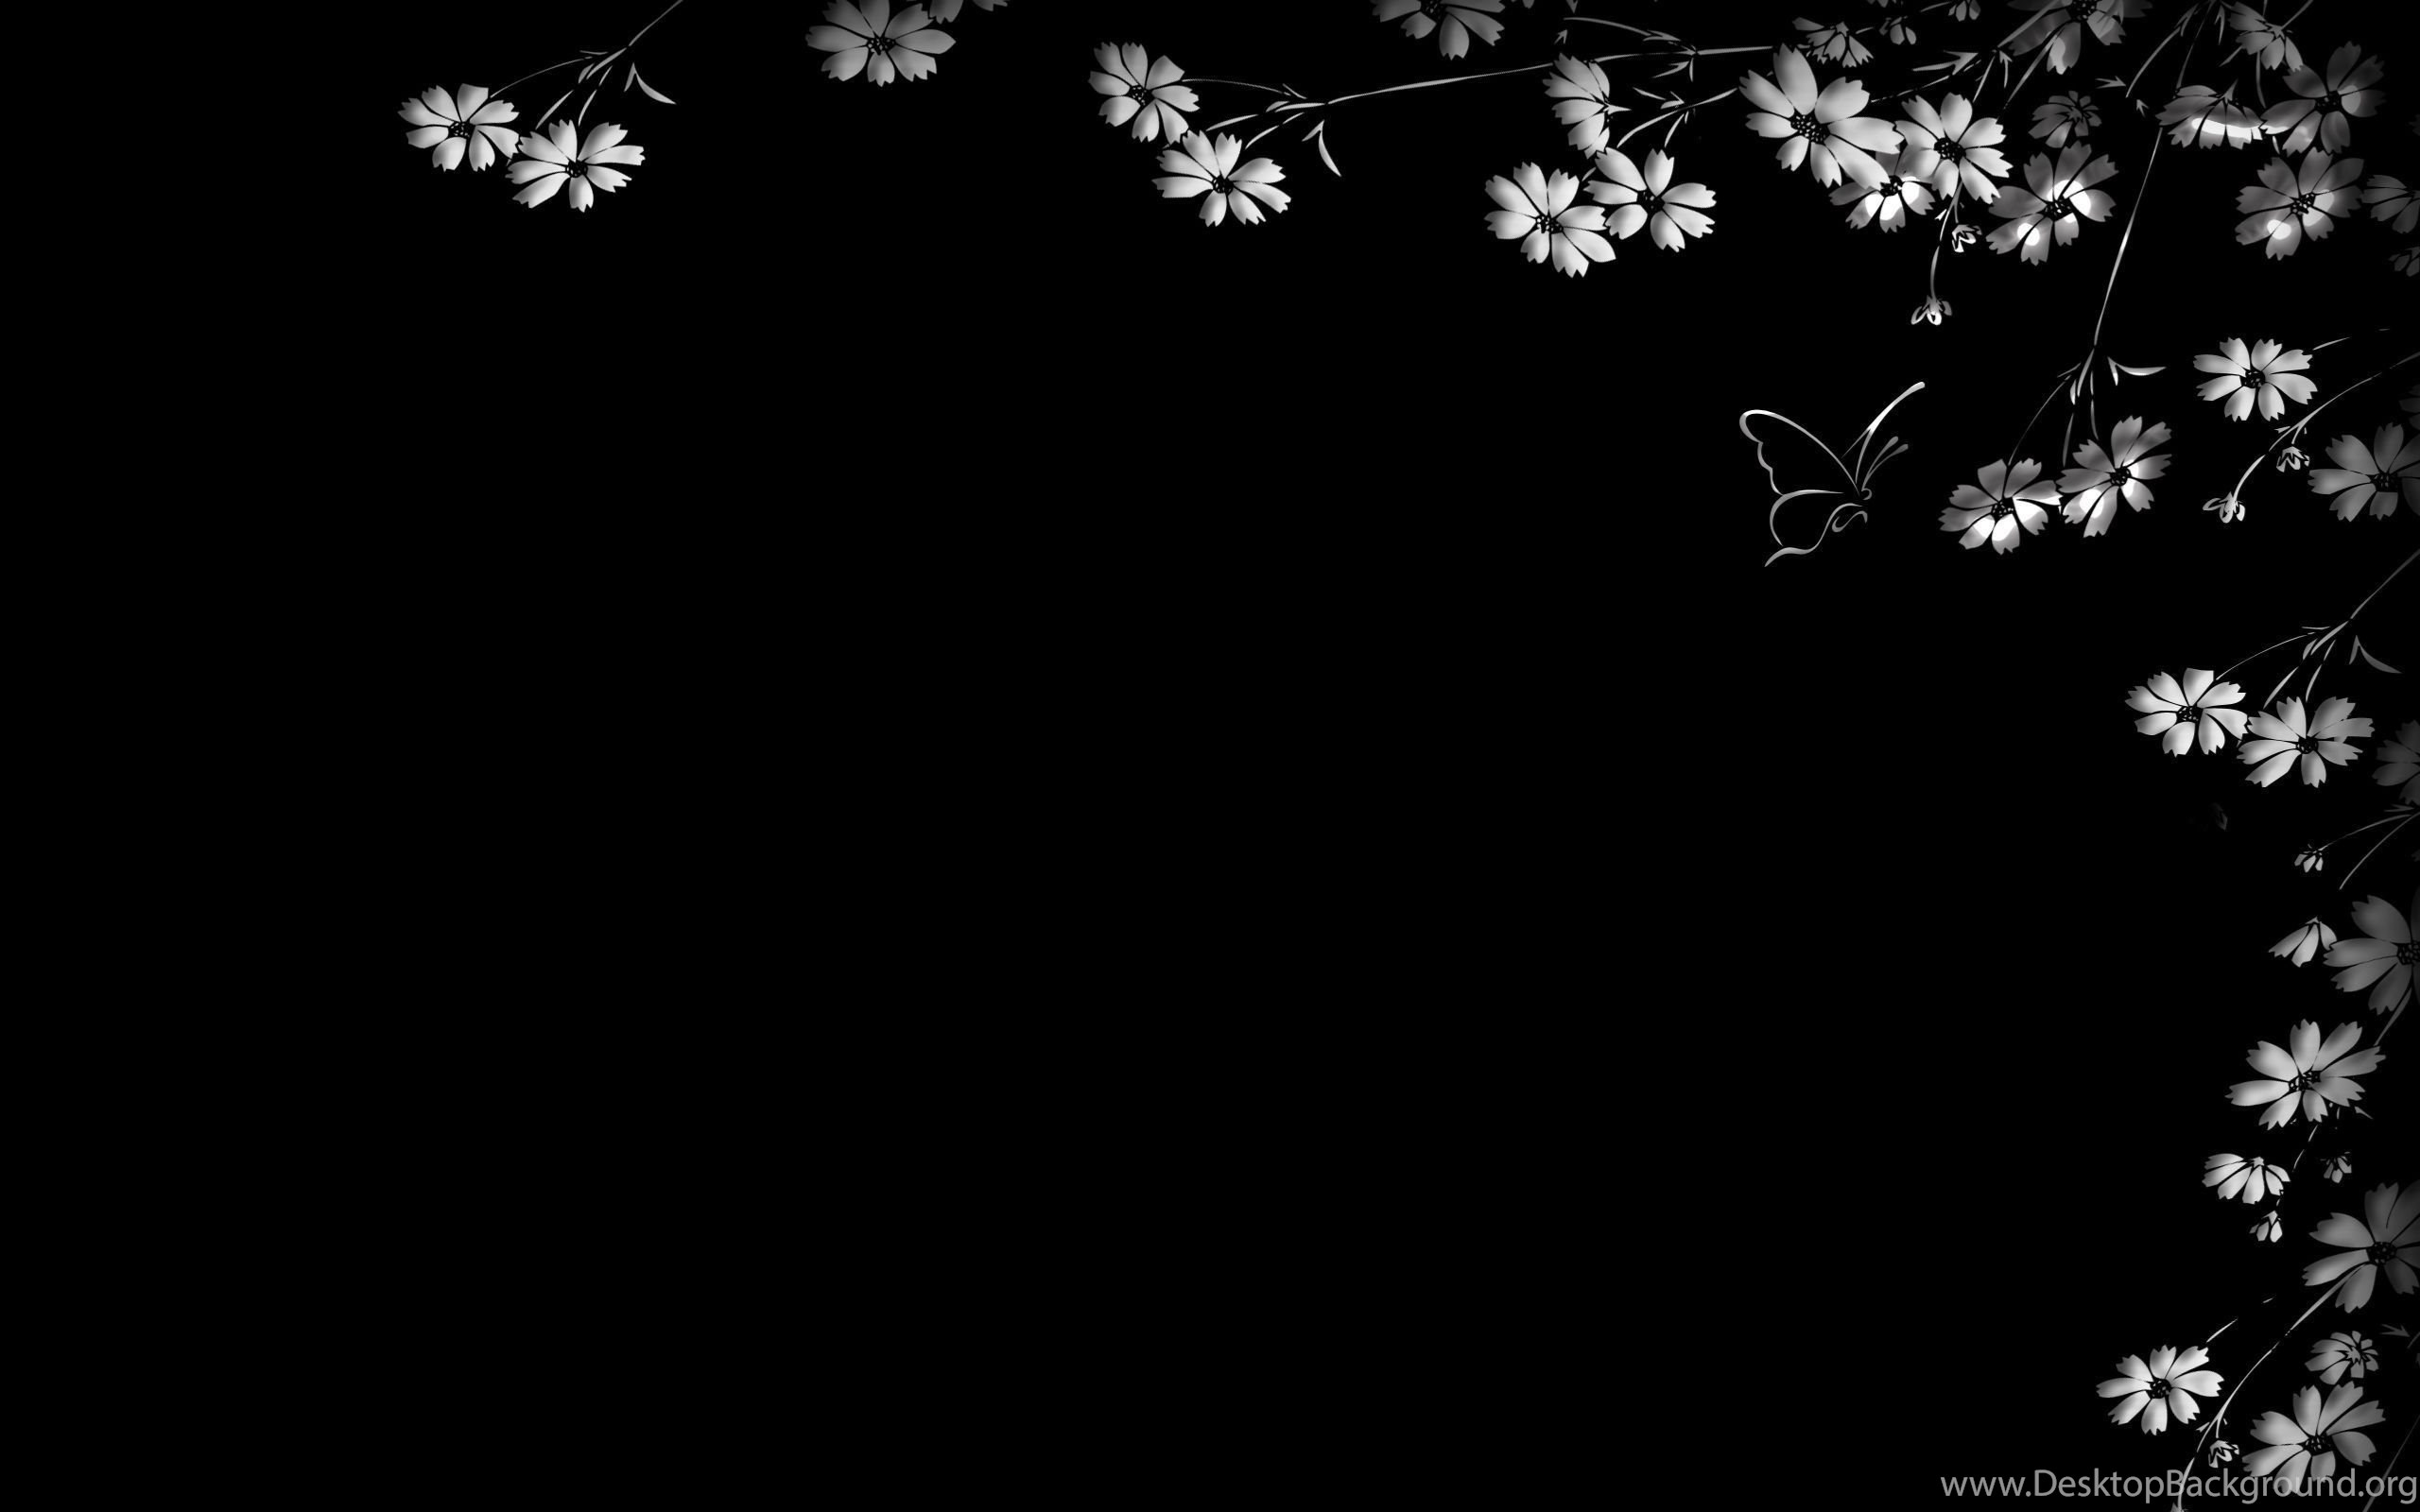 Floral Wallpapers With Black Backgrounds 24 Desktop Wallpapers